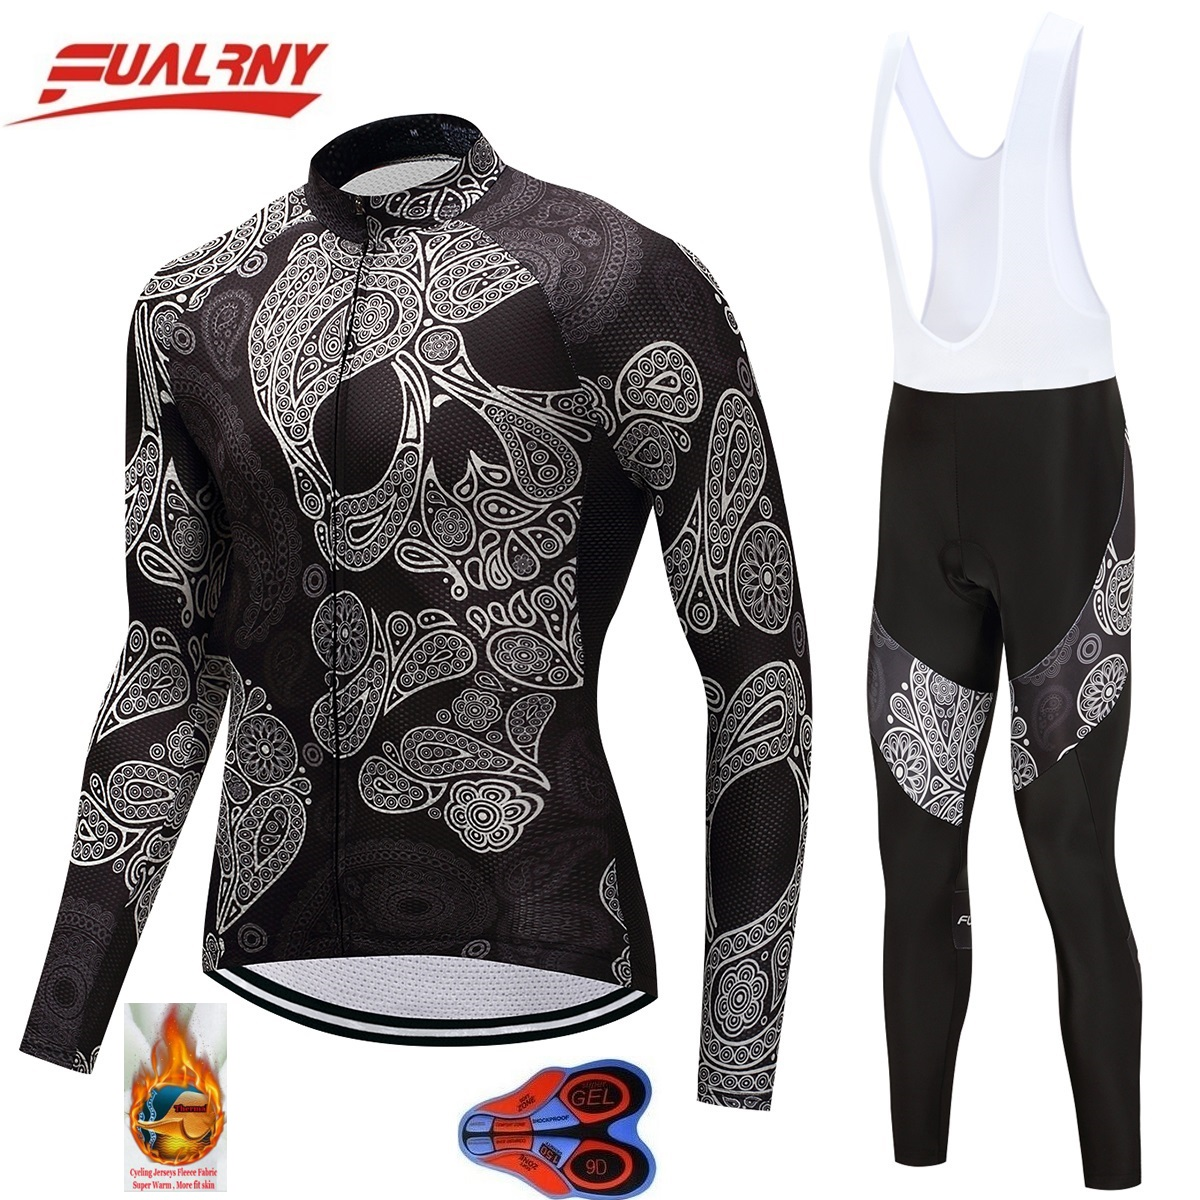 2018 FUALRNY winter Thermal Fleece cycling jersey long sleeve men with pants cycling sets bike wear cycling 9D gel Skull flower2018 FUALRNY winter Thermal Fleece cycling jersey long sleeve men with pants cycling sets bike wear cycling 9D gel Skull flower